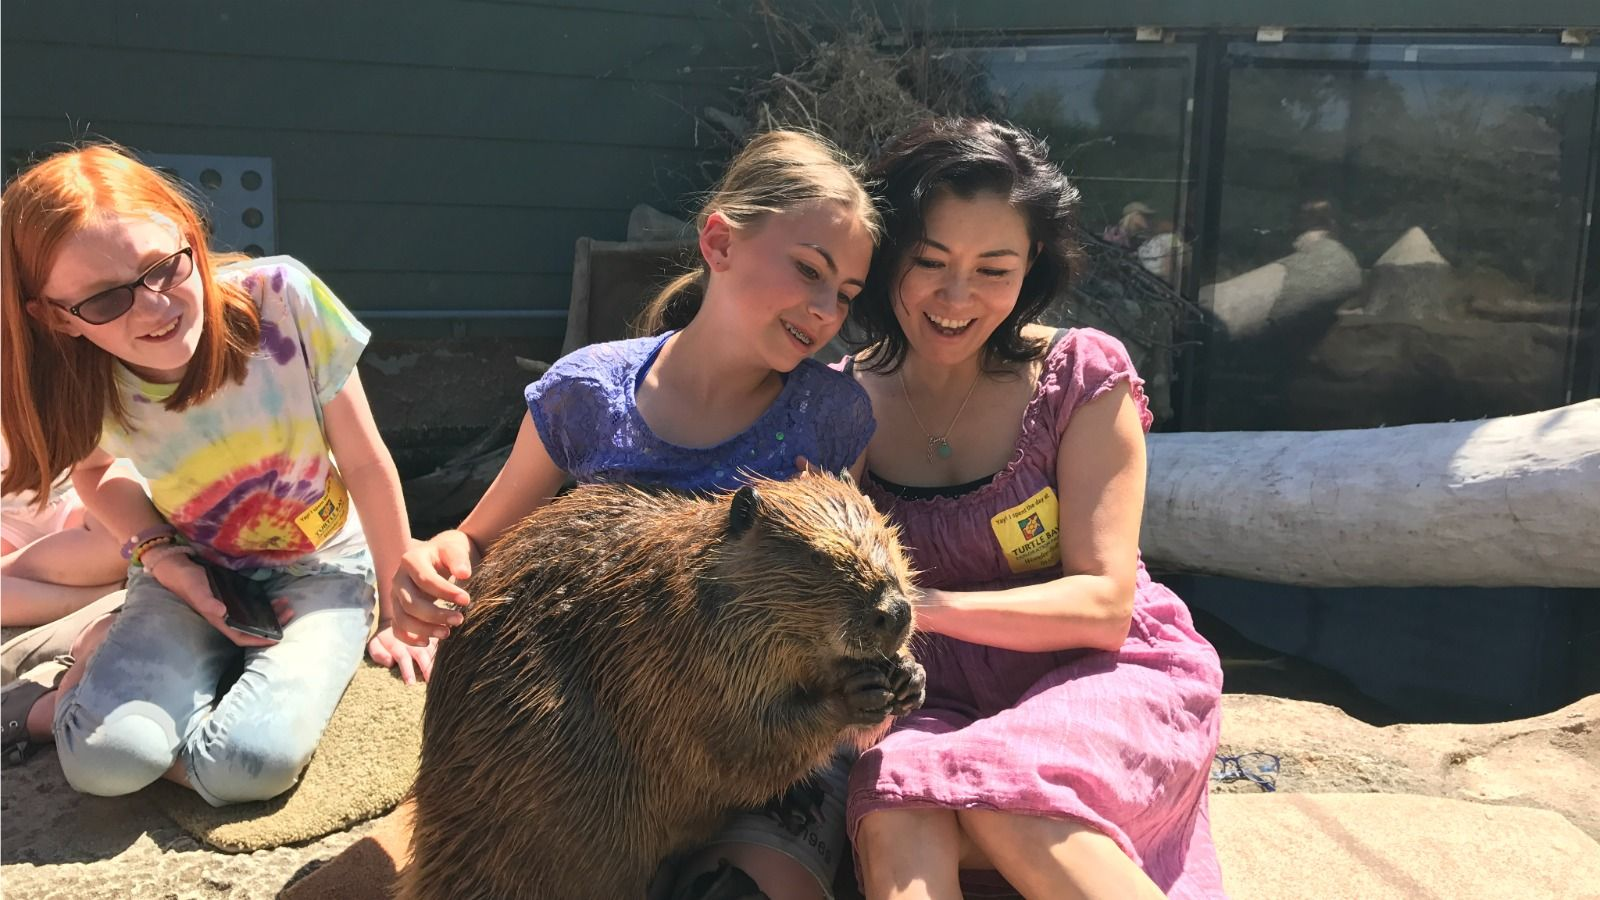 Experience Wildlife - Timber the Beaver with his Guests